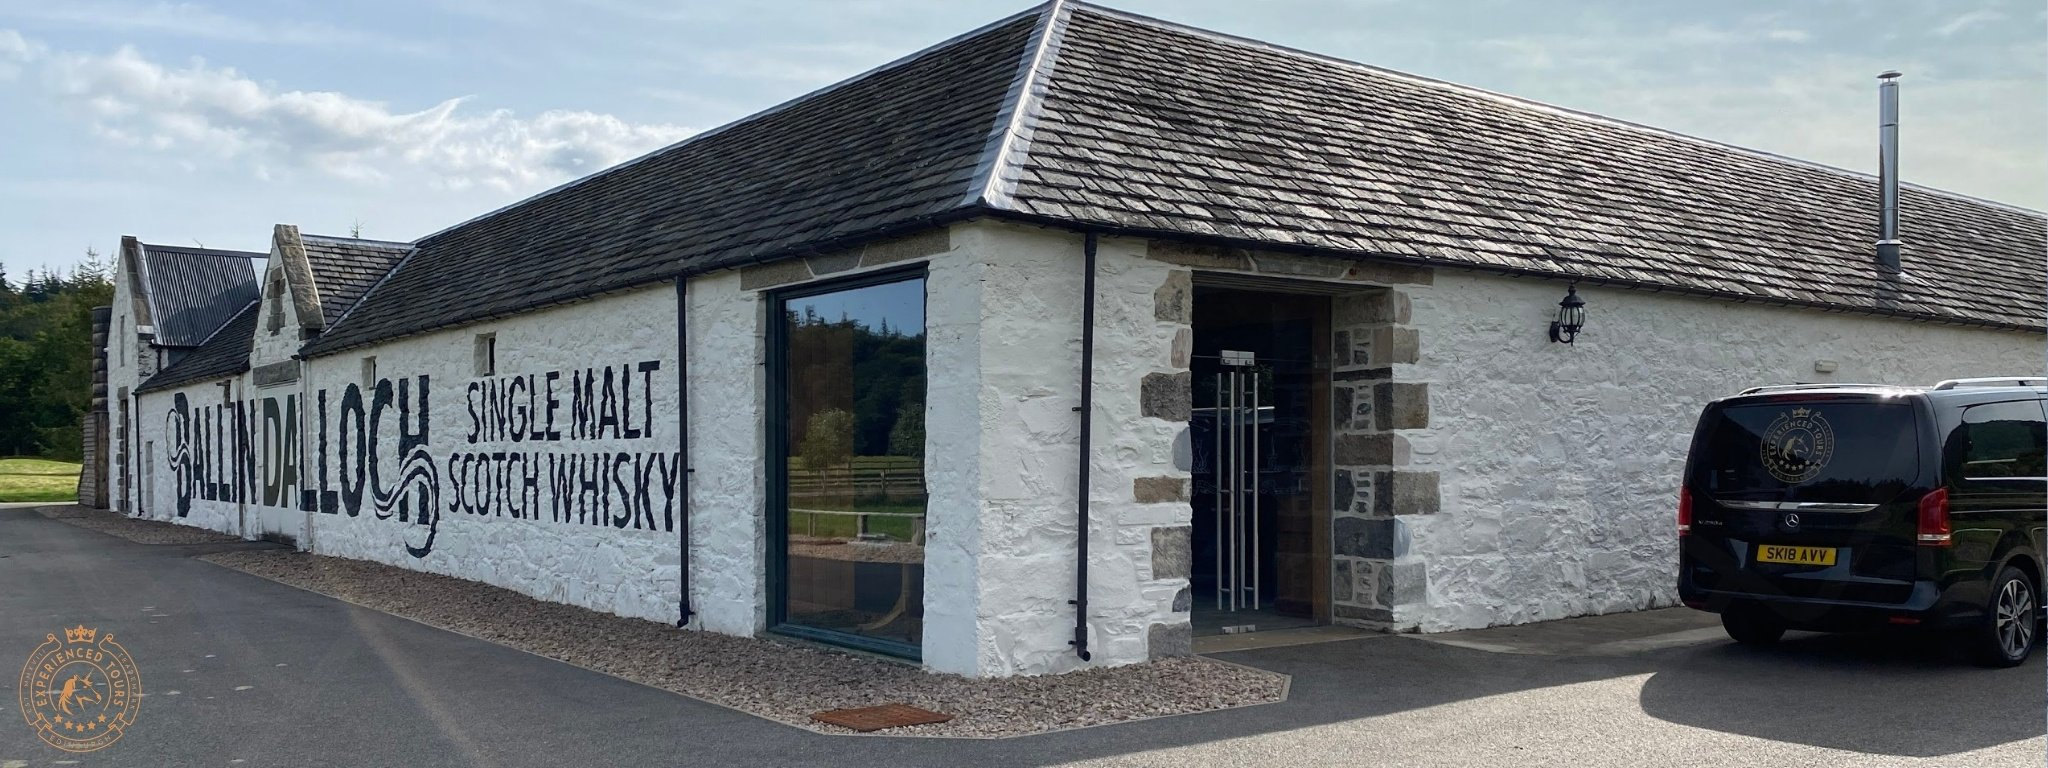 The front of Ballindalloch Distillery